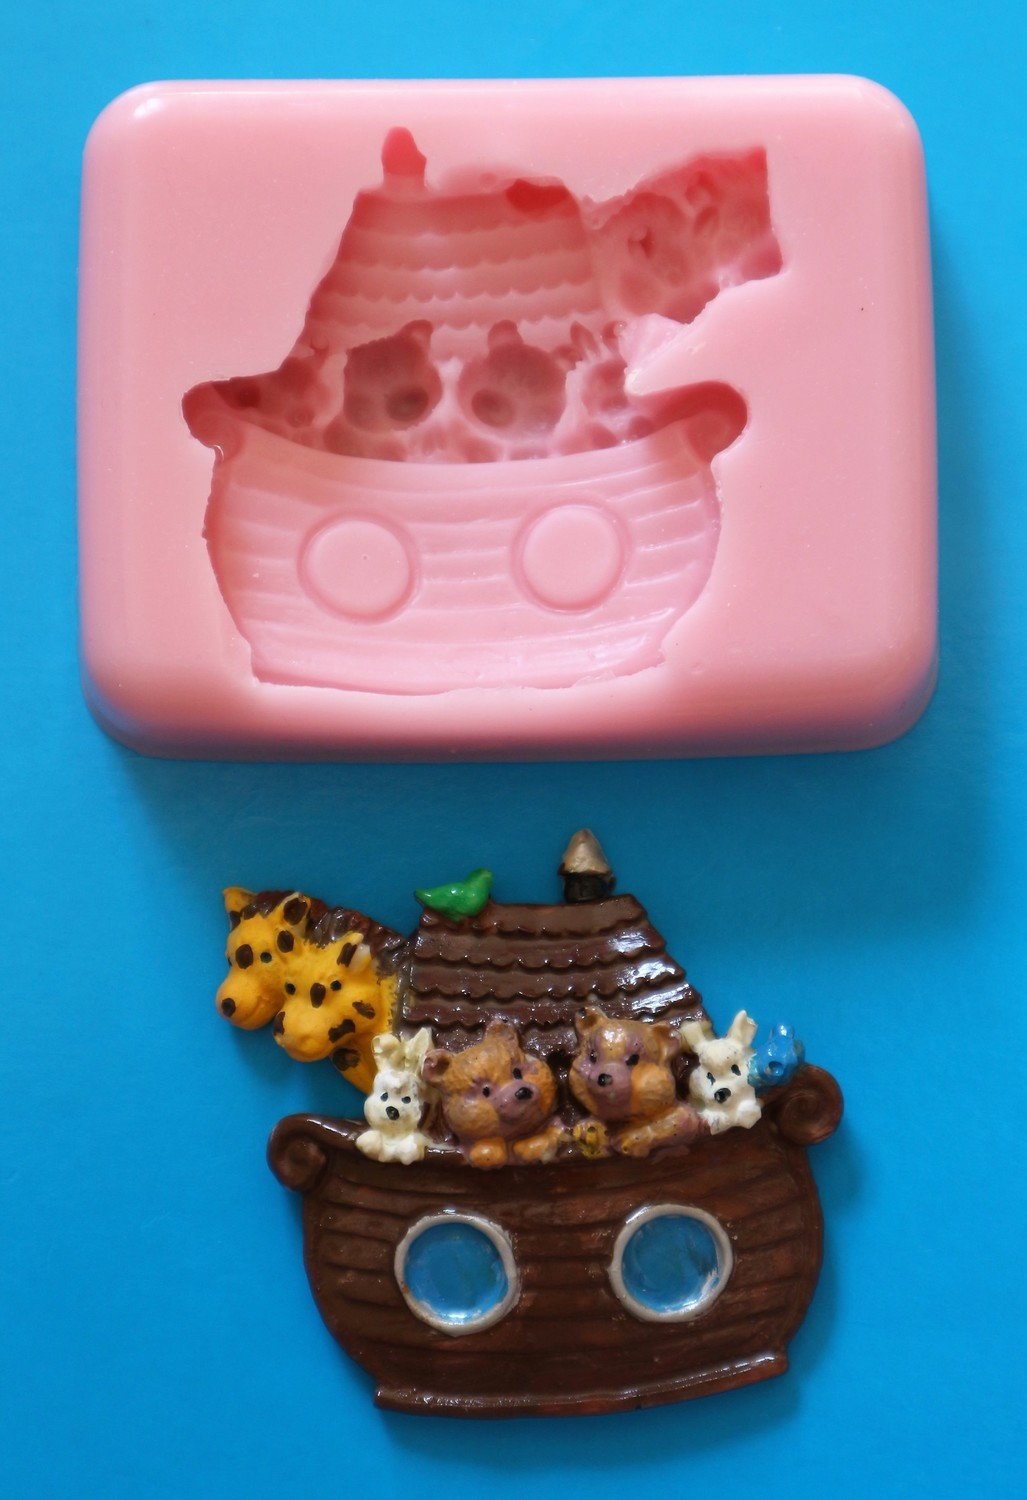 NOAH'S ARK SILICONE MOULD